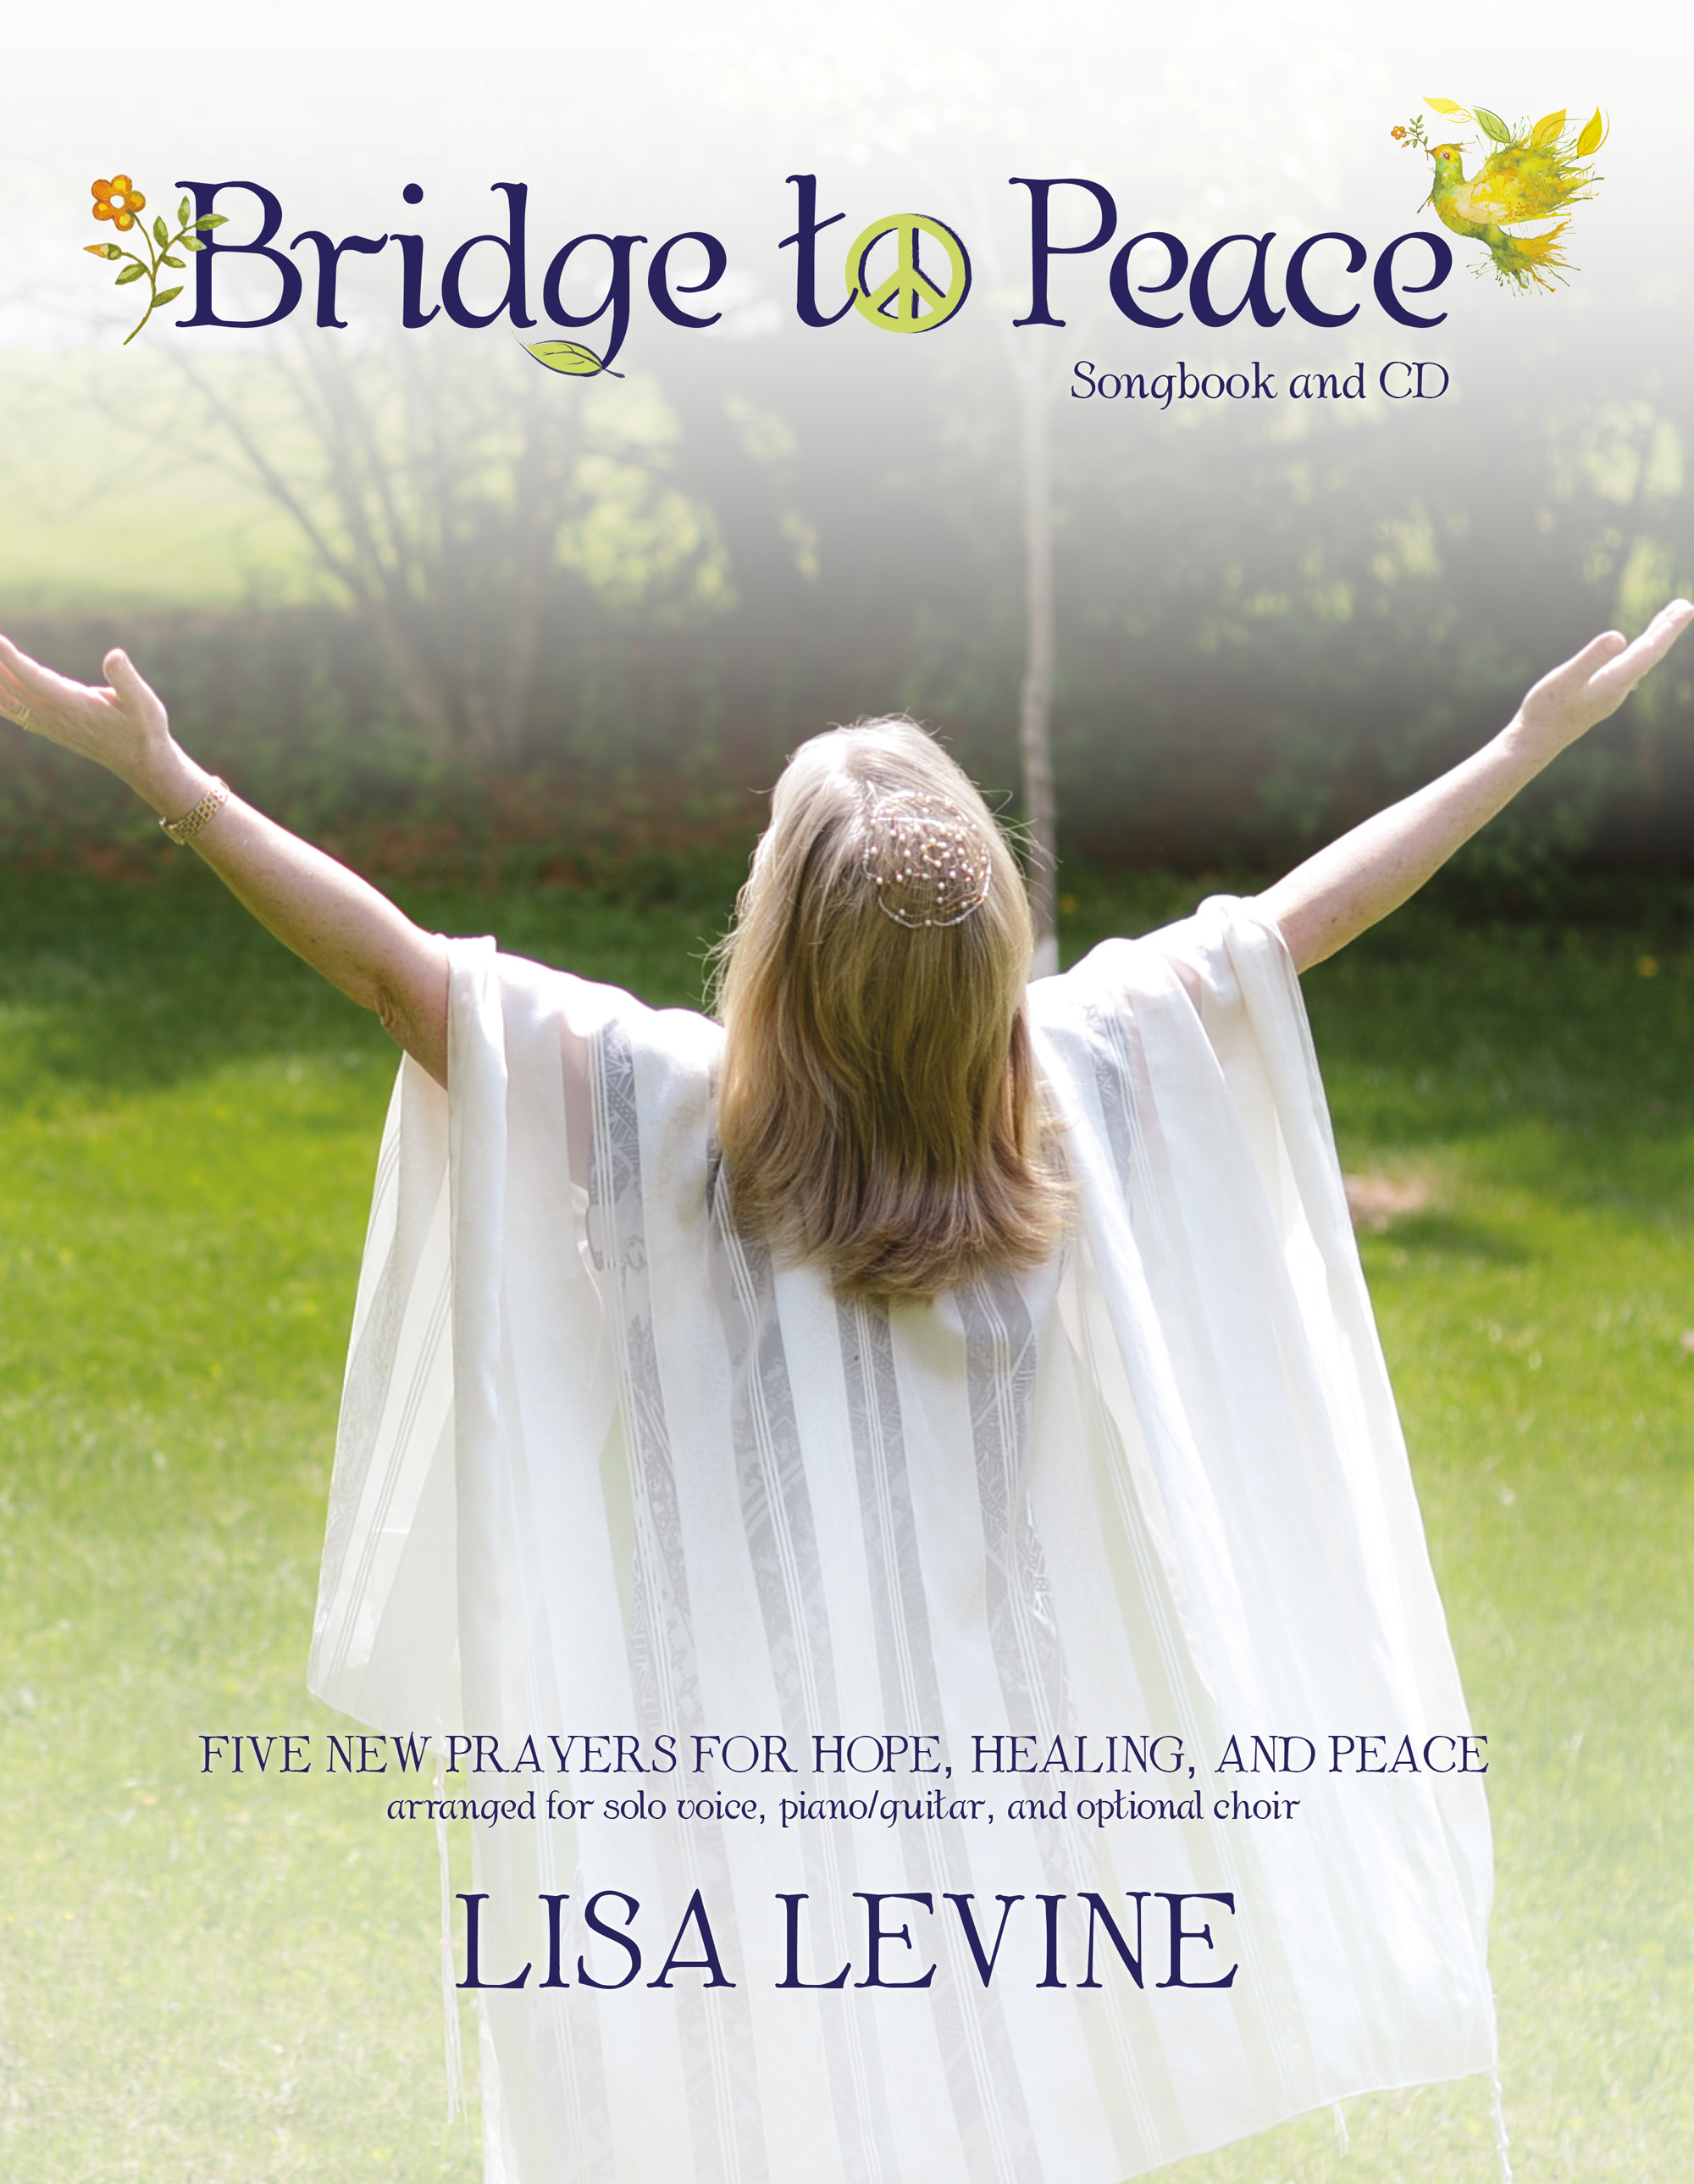 14Bridge-To-Peace-Songbook-Cover.jpg